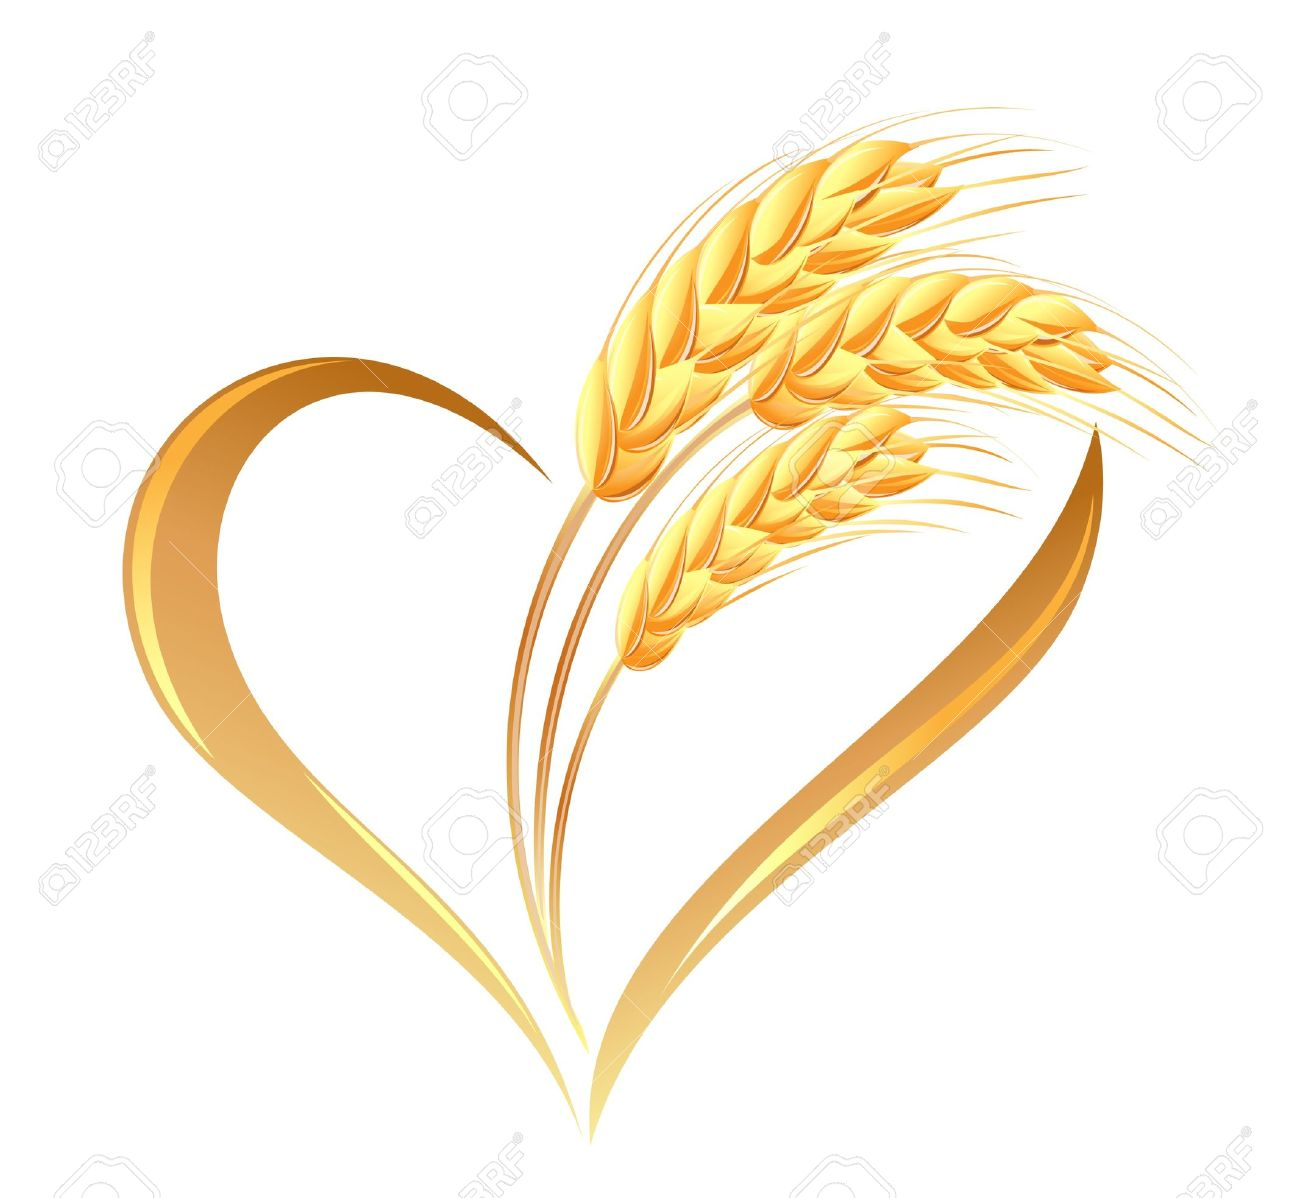 Abstract Wheat Ears Icon With Heart Element Royalty Free Cliparts.